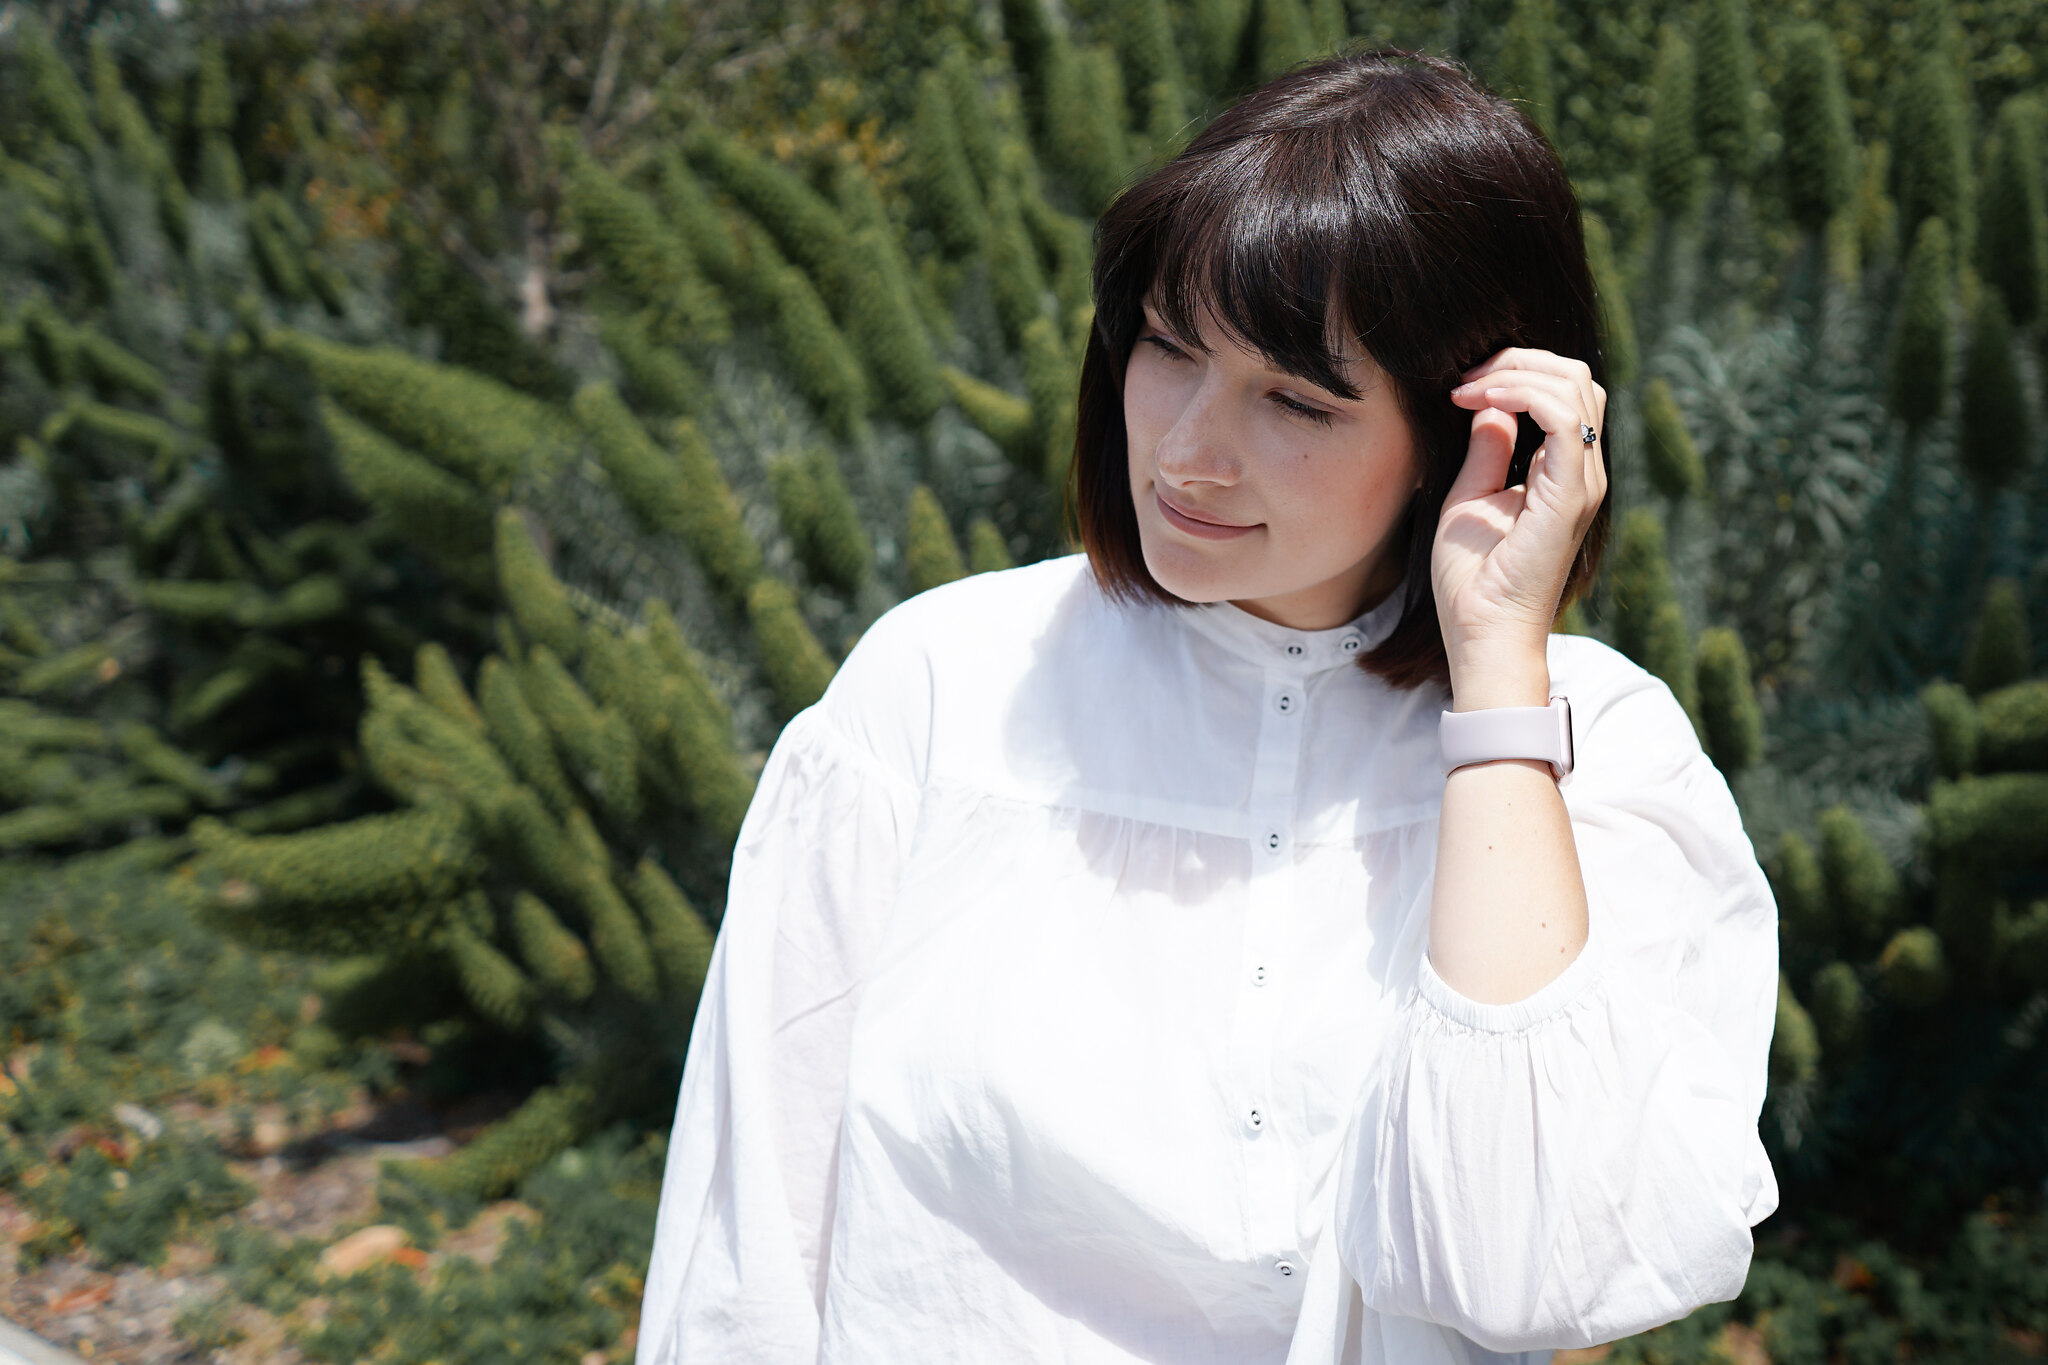 Uniqlo, Smock, Blouse, wHITE, SUMMER, Fbloggers, OOTD, Postpartum style, new mom